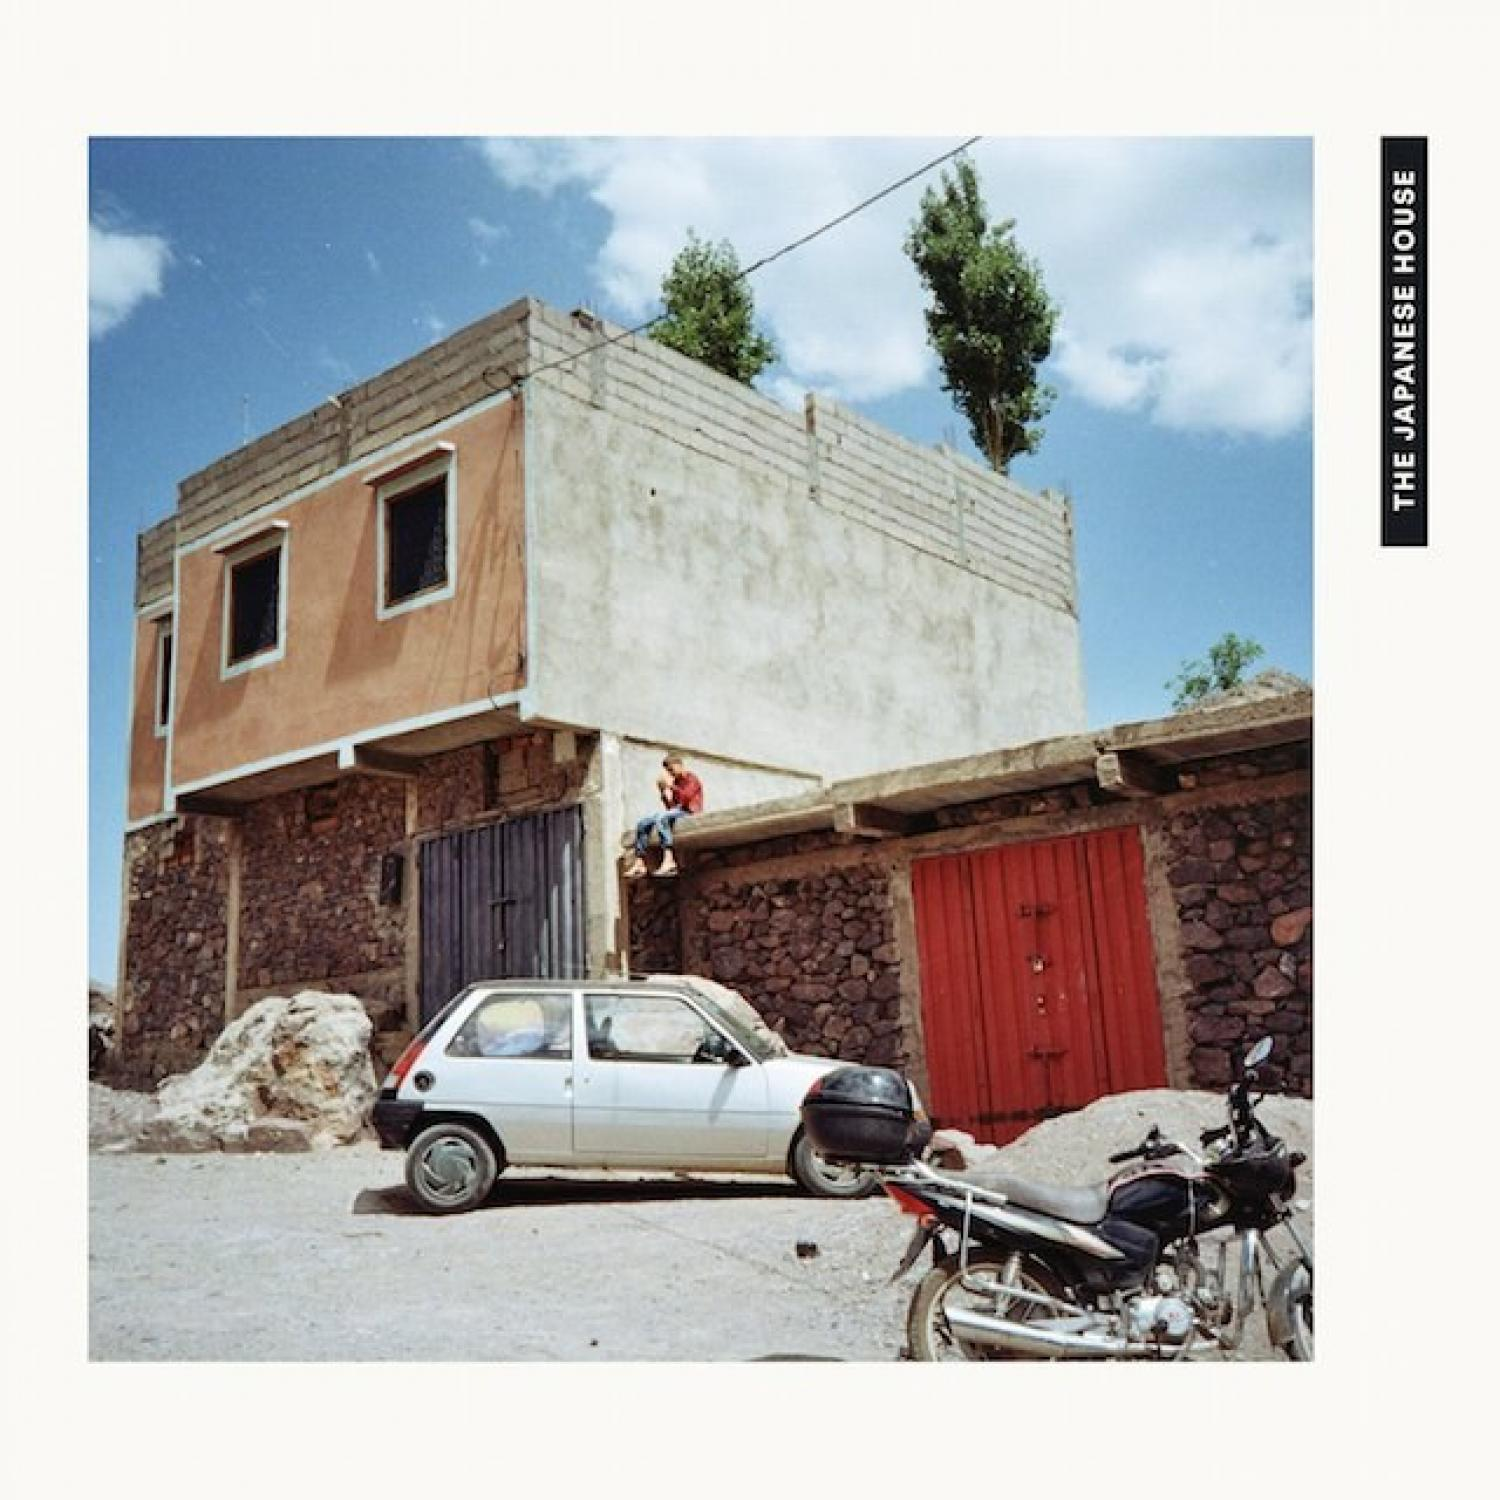 Swim Against the Tide - The Japanese House